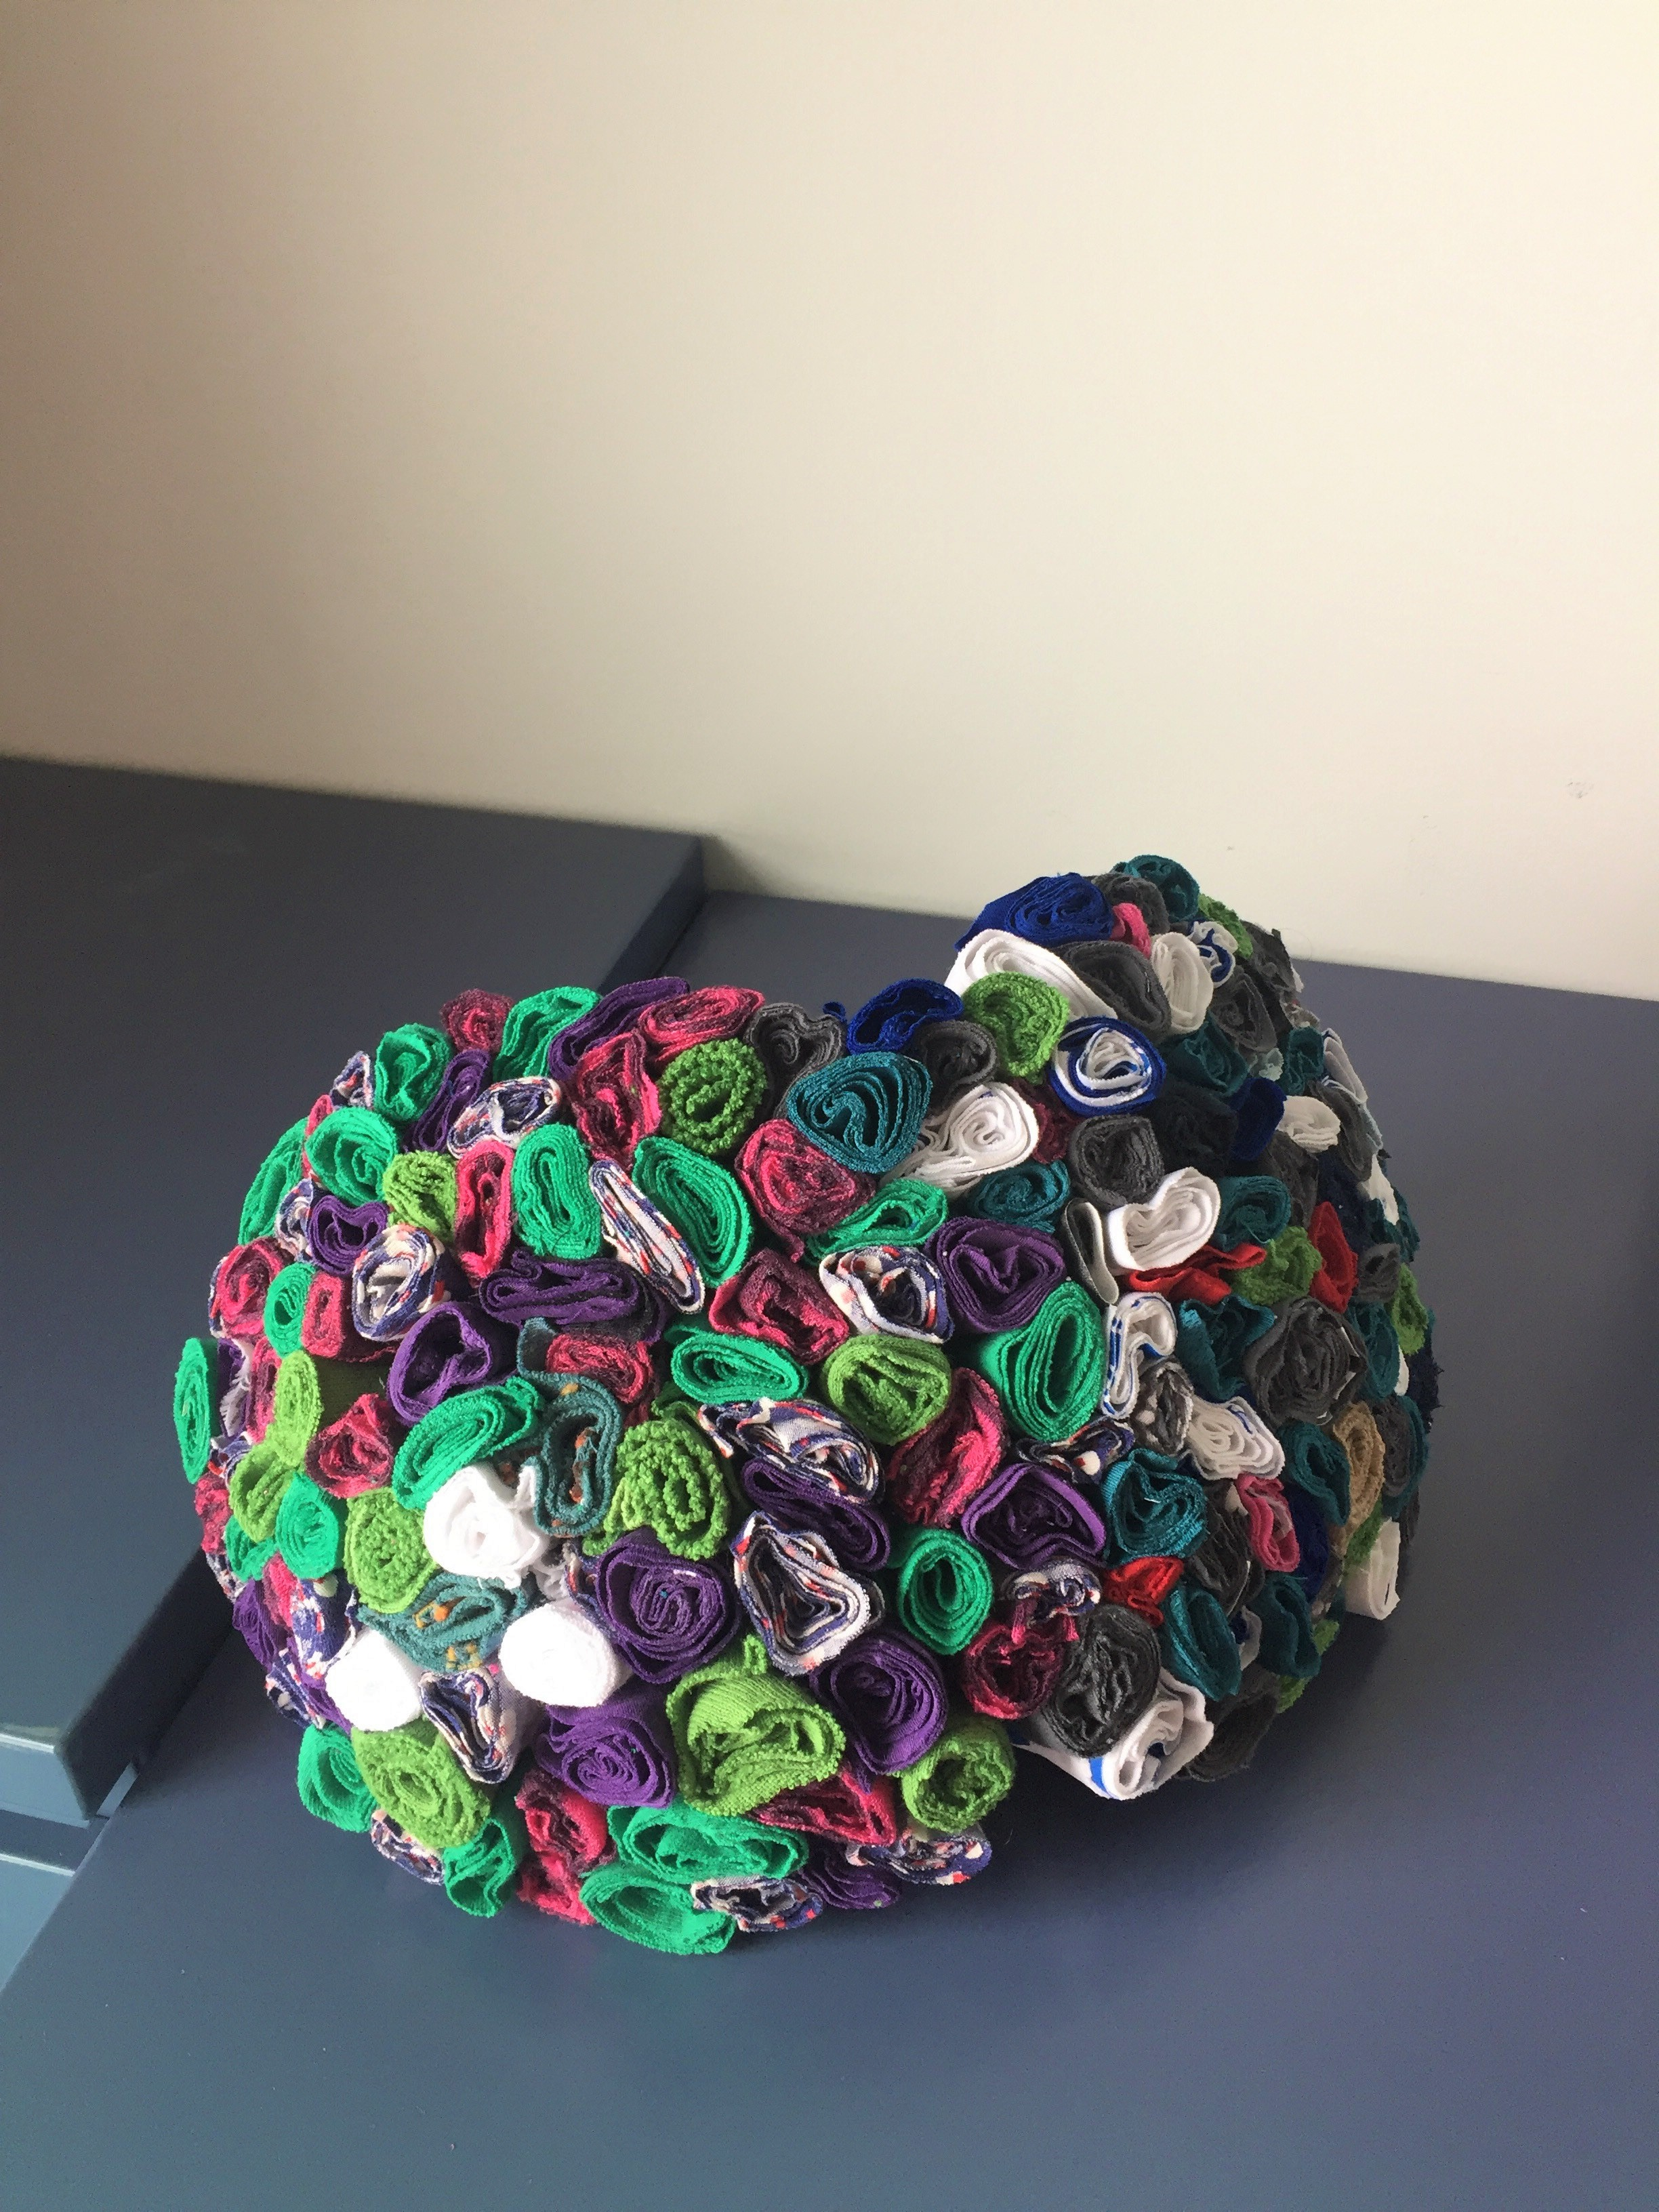 Rolled fabric sculpture